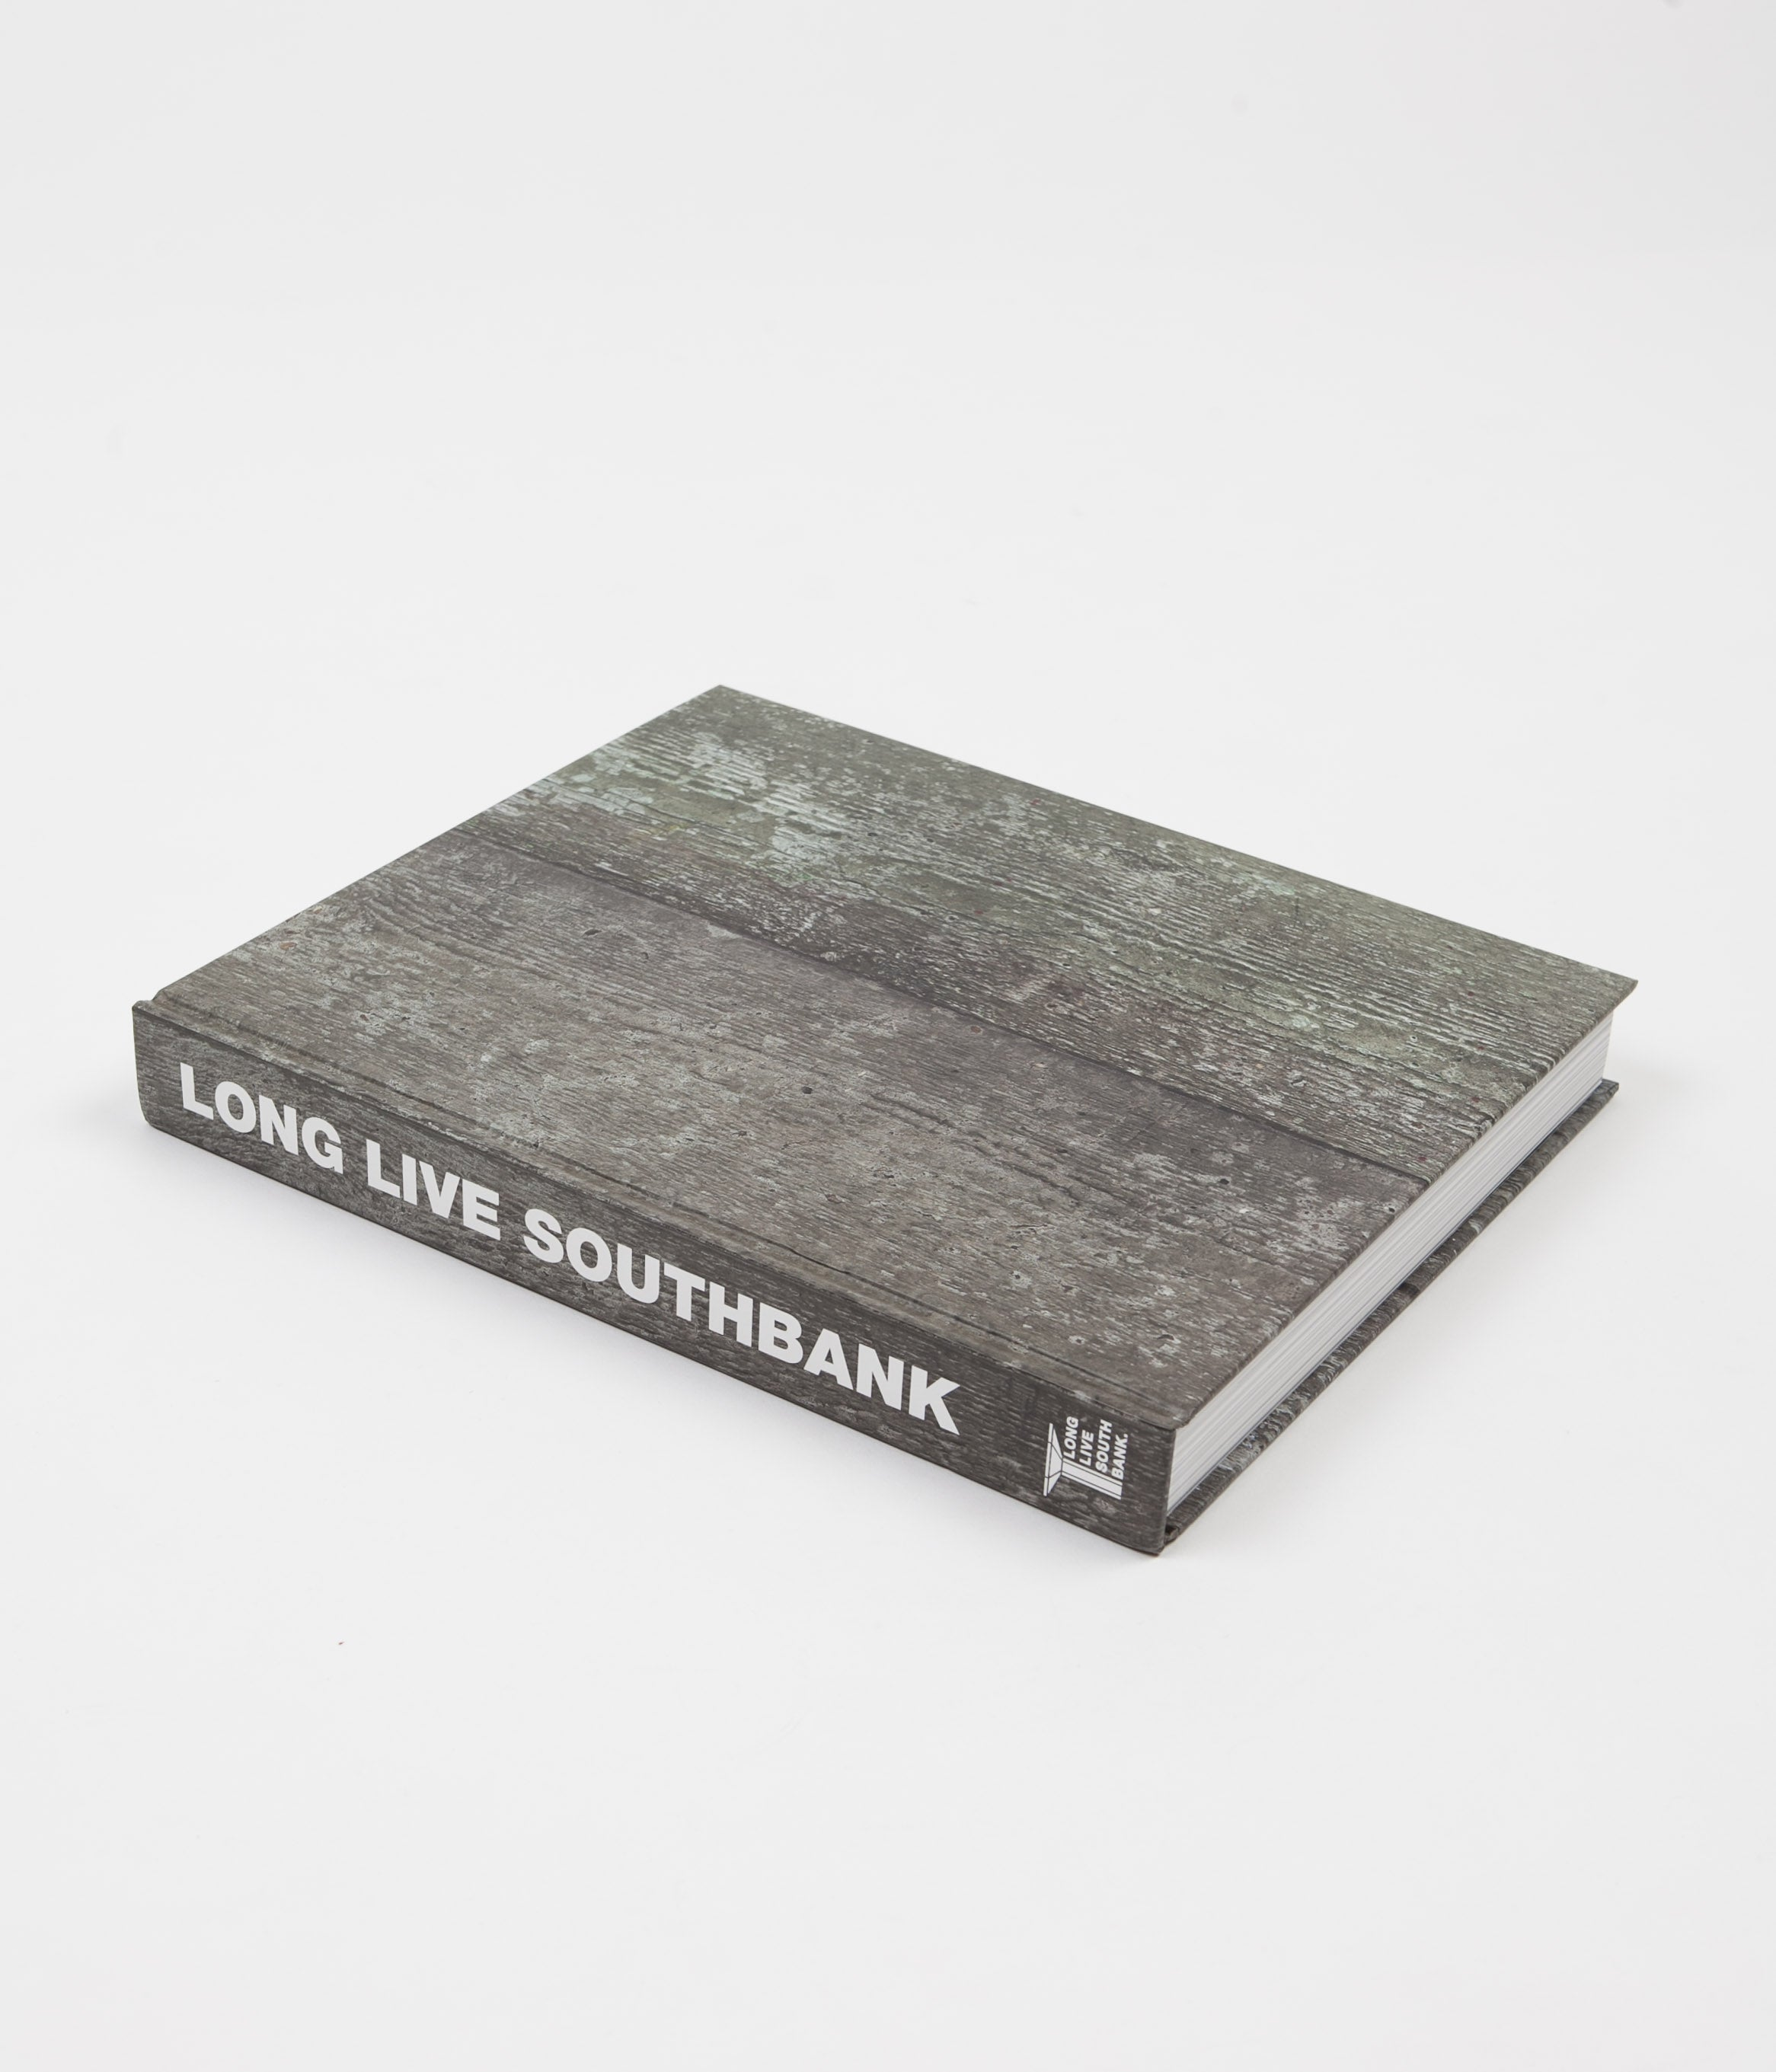 Long Live Southbank Book - Hardback